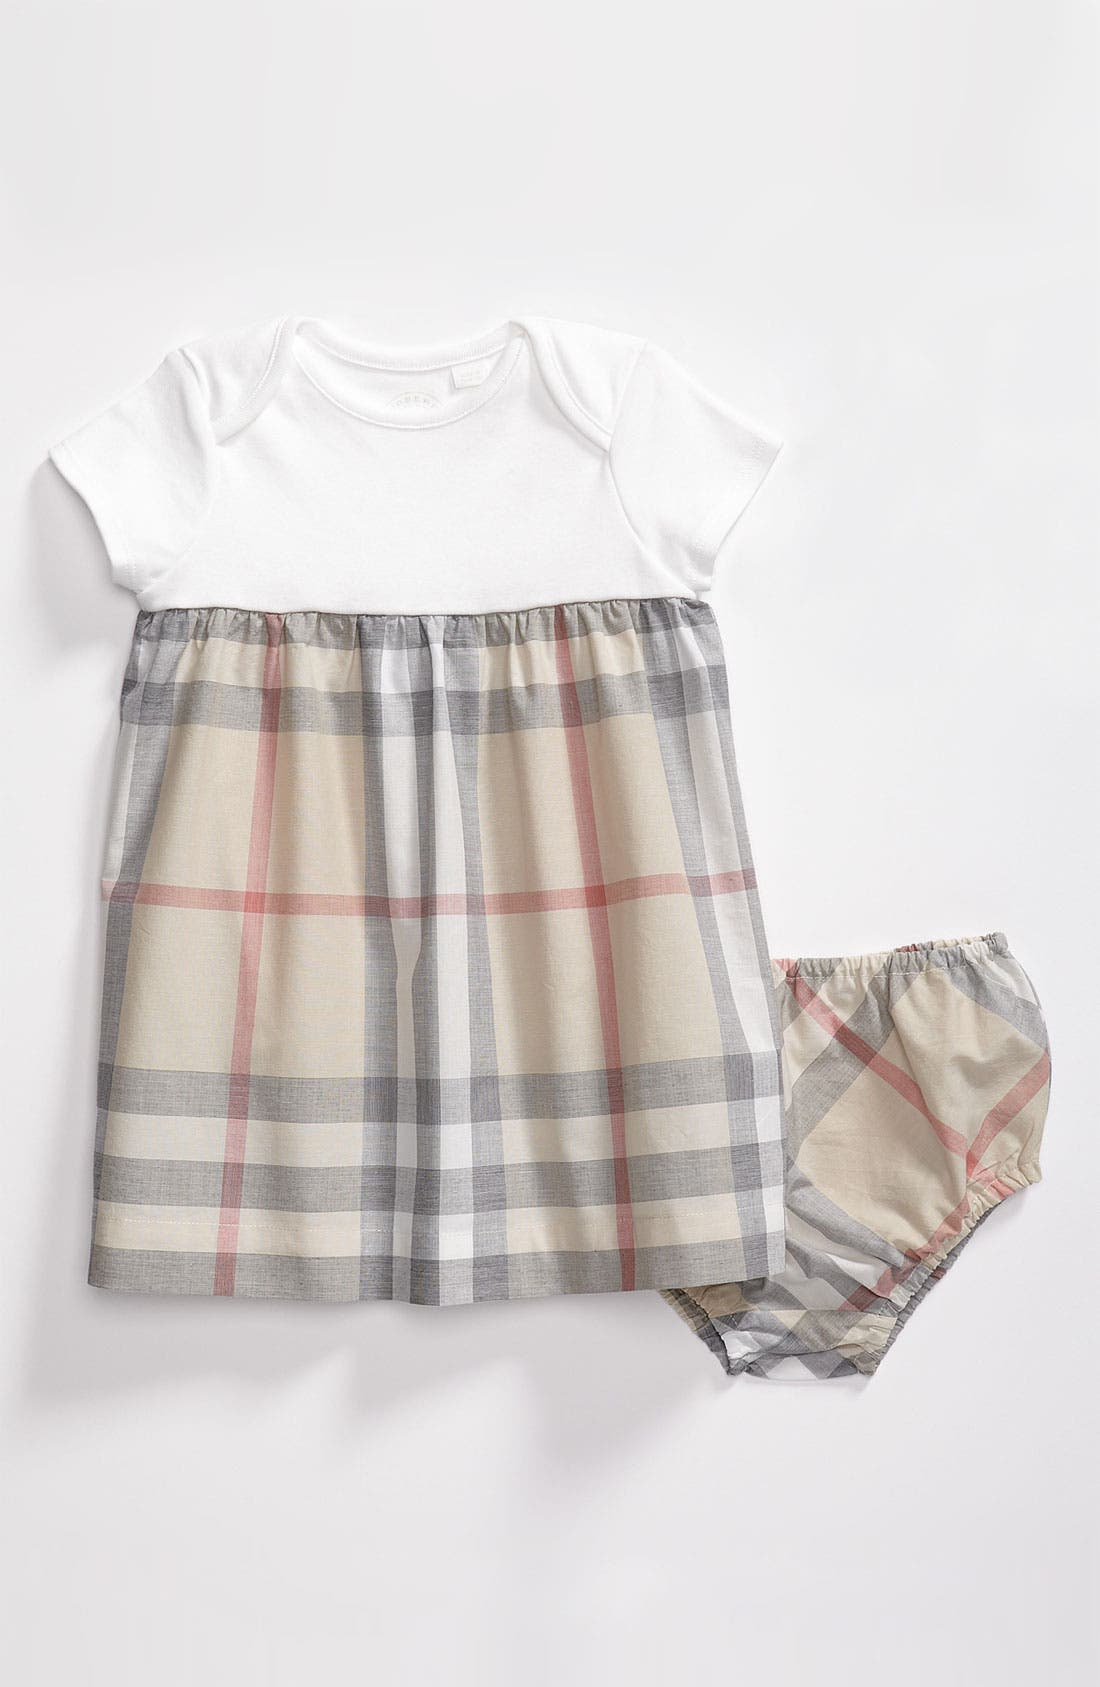 Main Image - Burberry Dress (Baby)